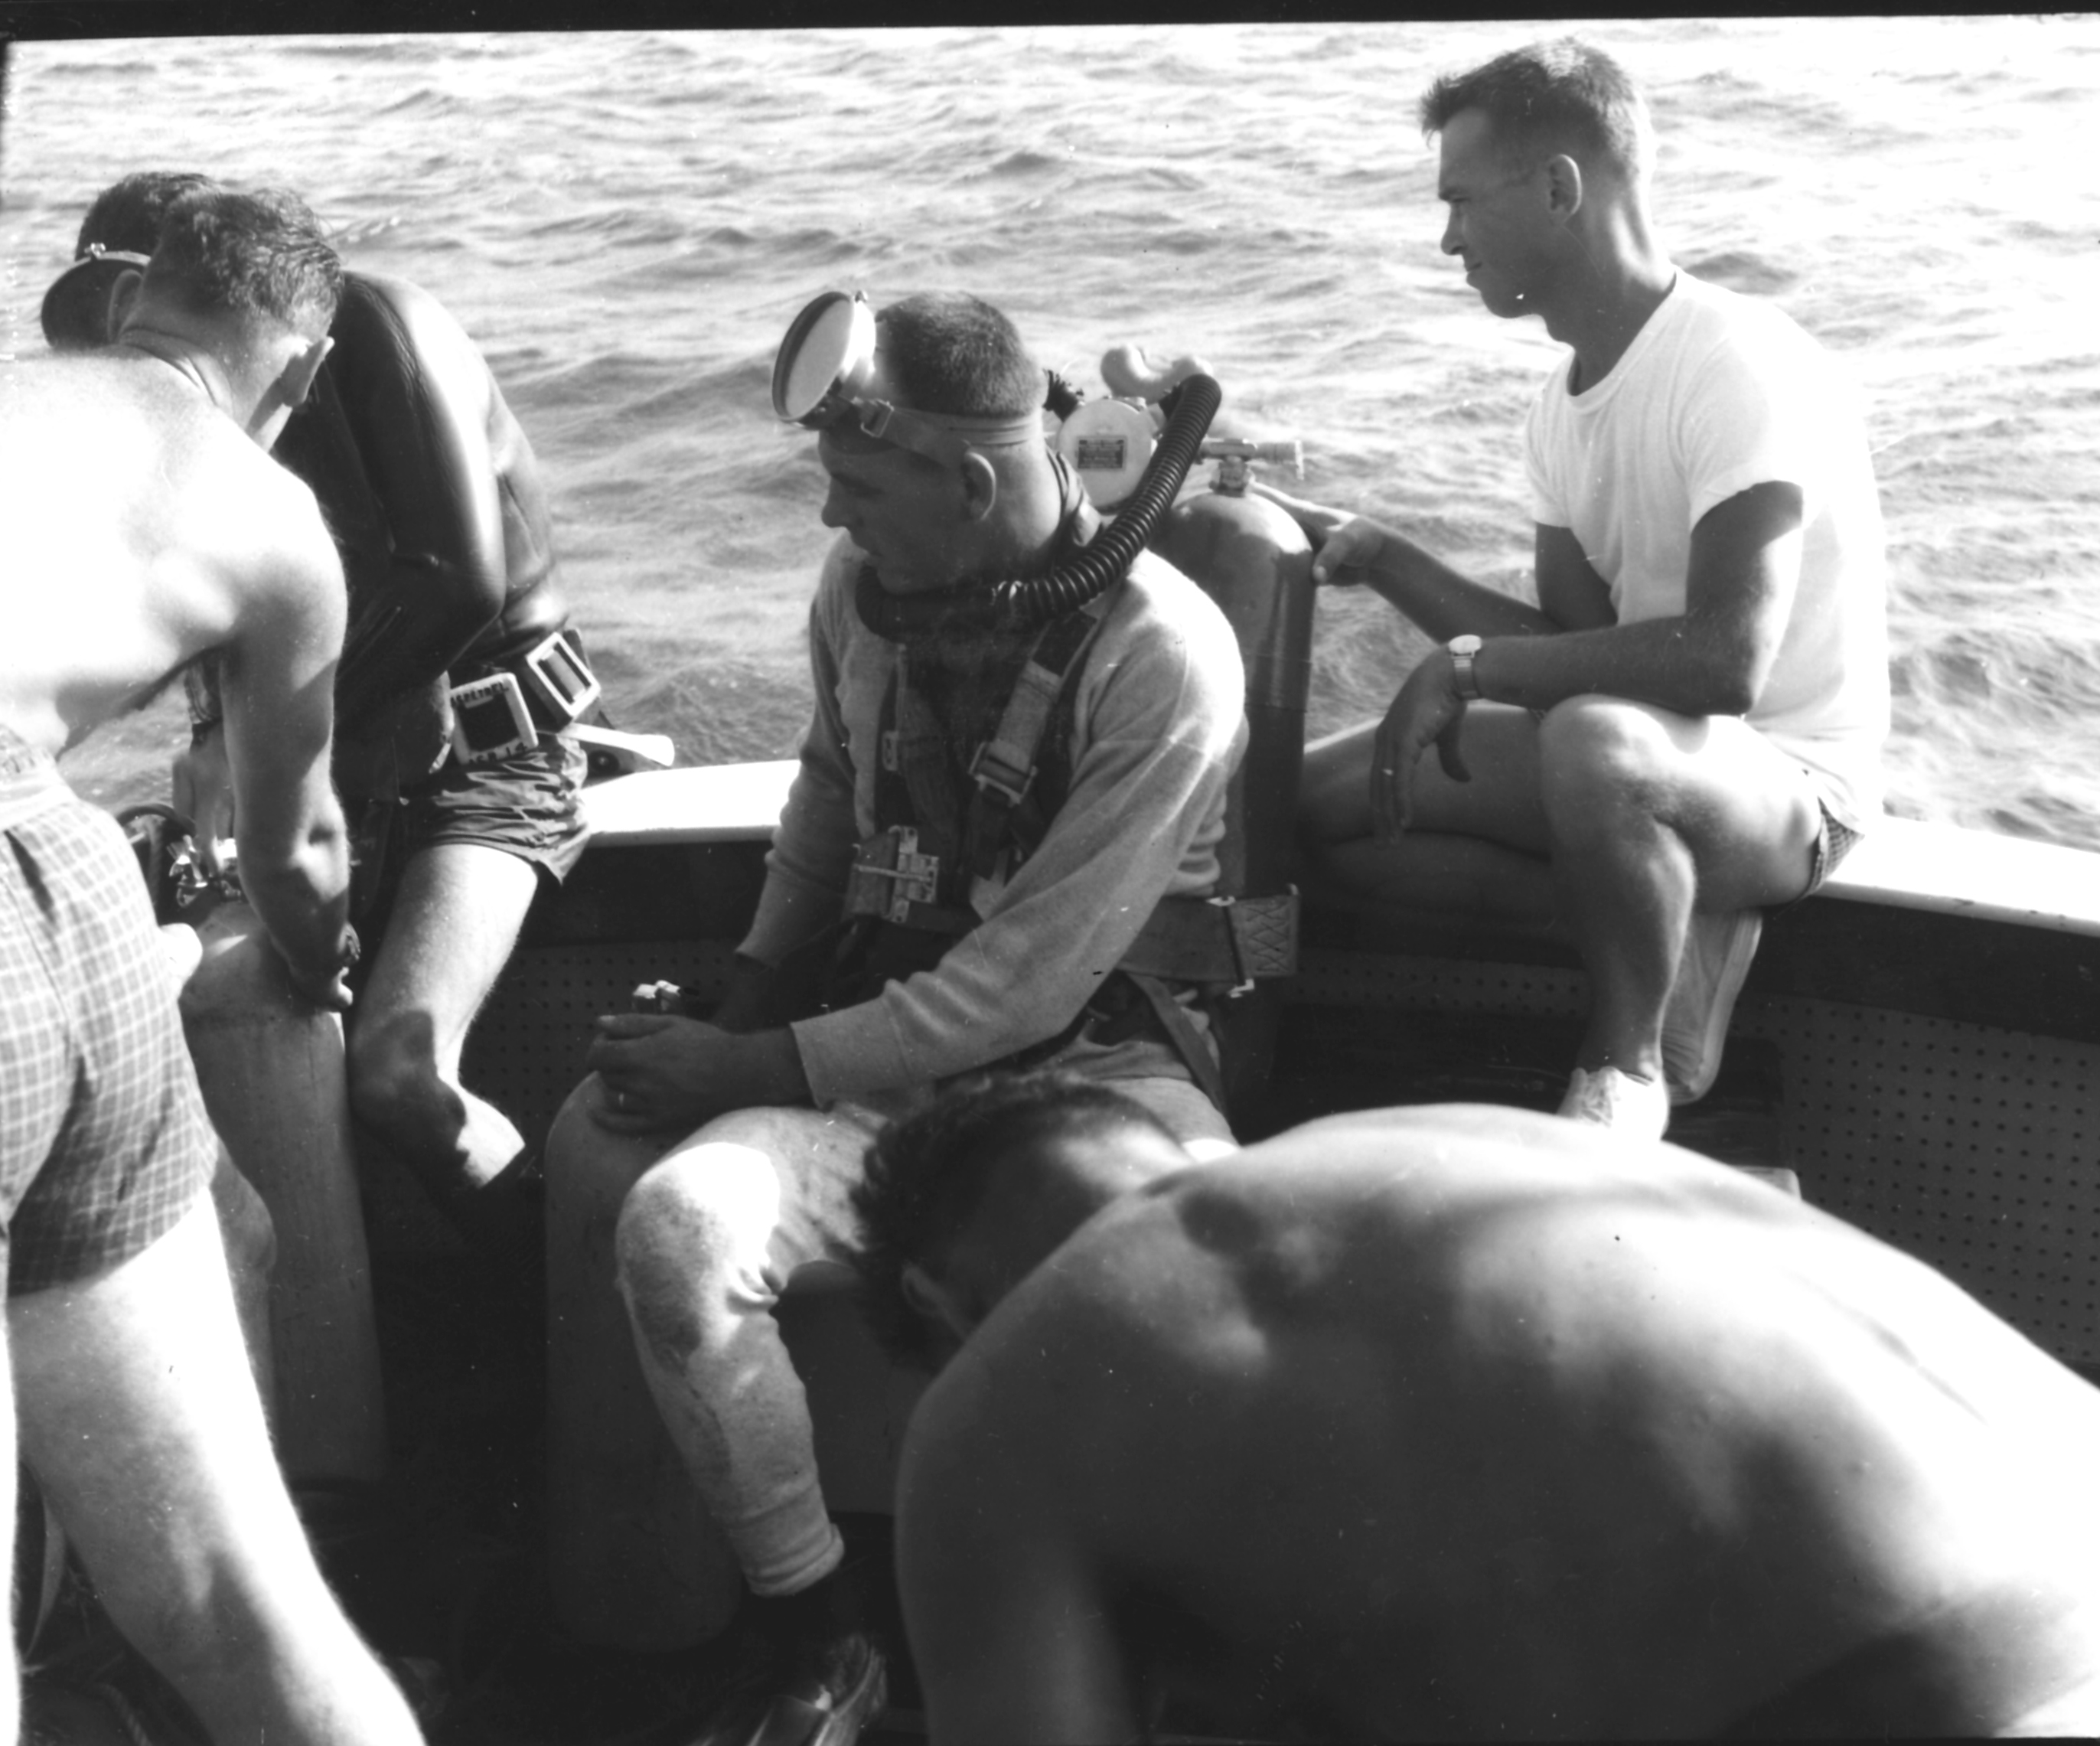 Navy divers prepare to explore the wreck in 1962